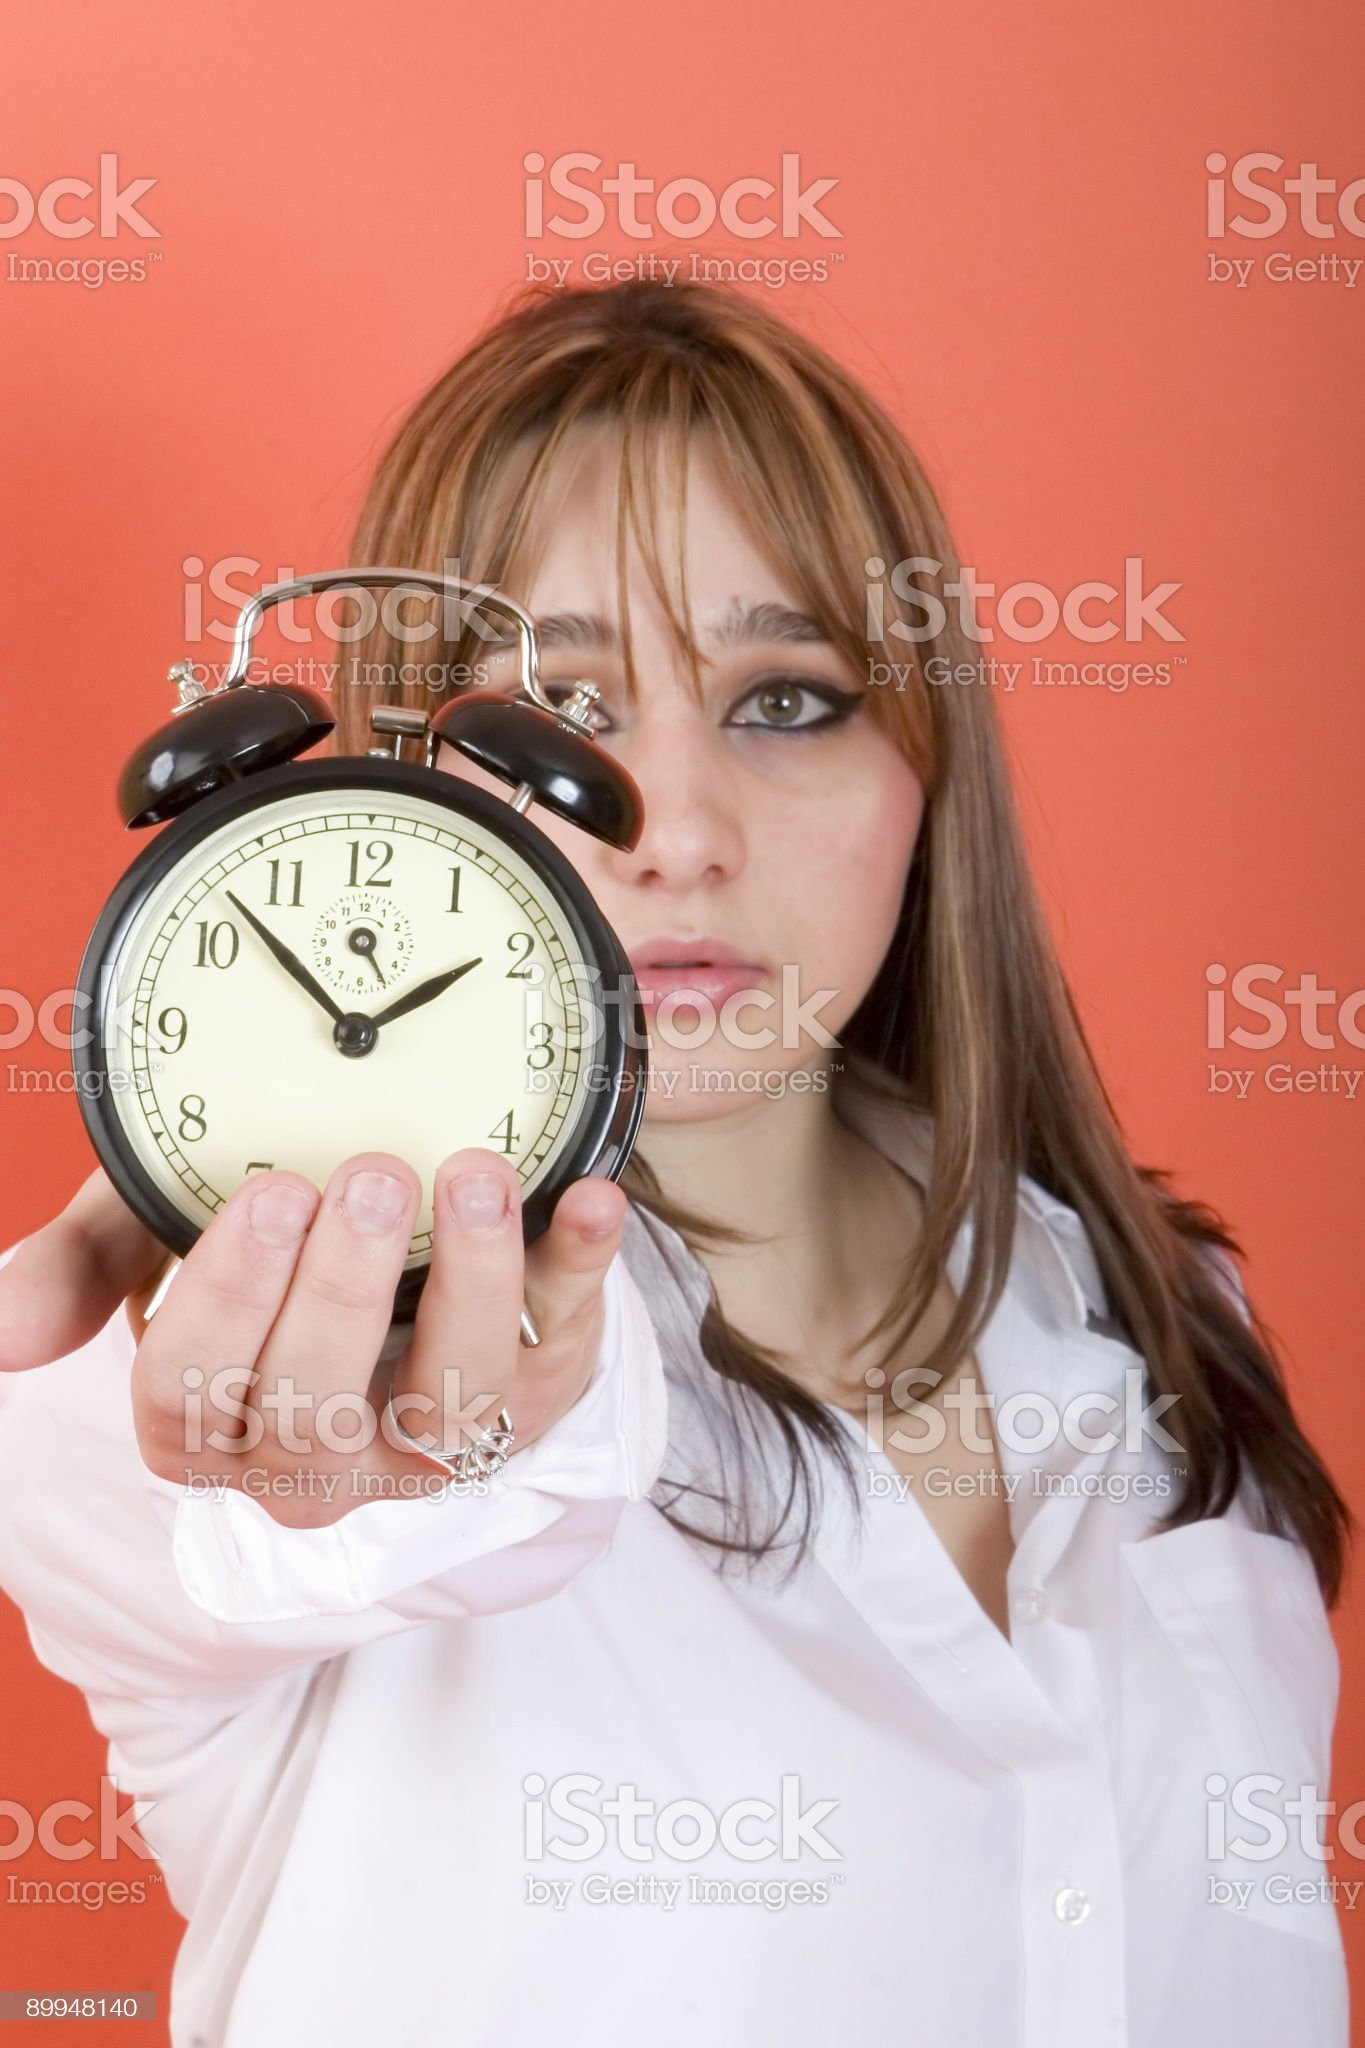 Its Time royalty-free stock photo